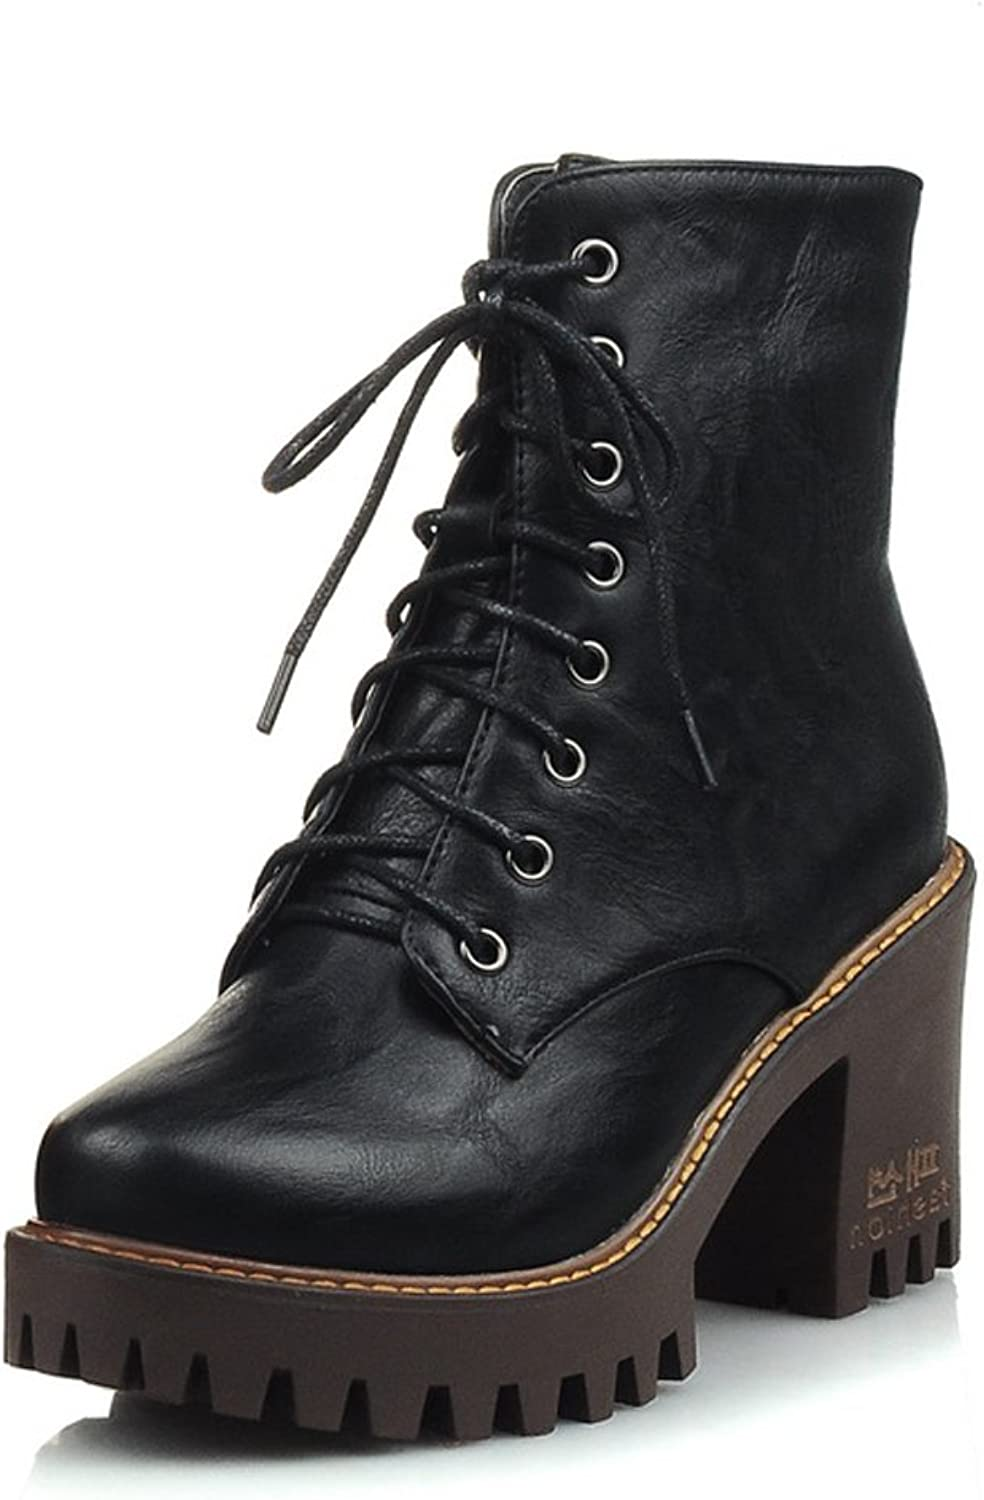 AIWEIYi Ladies Military Boots Round toe Square Heel Boots Lace up Platform Ankle Boots Brown